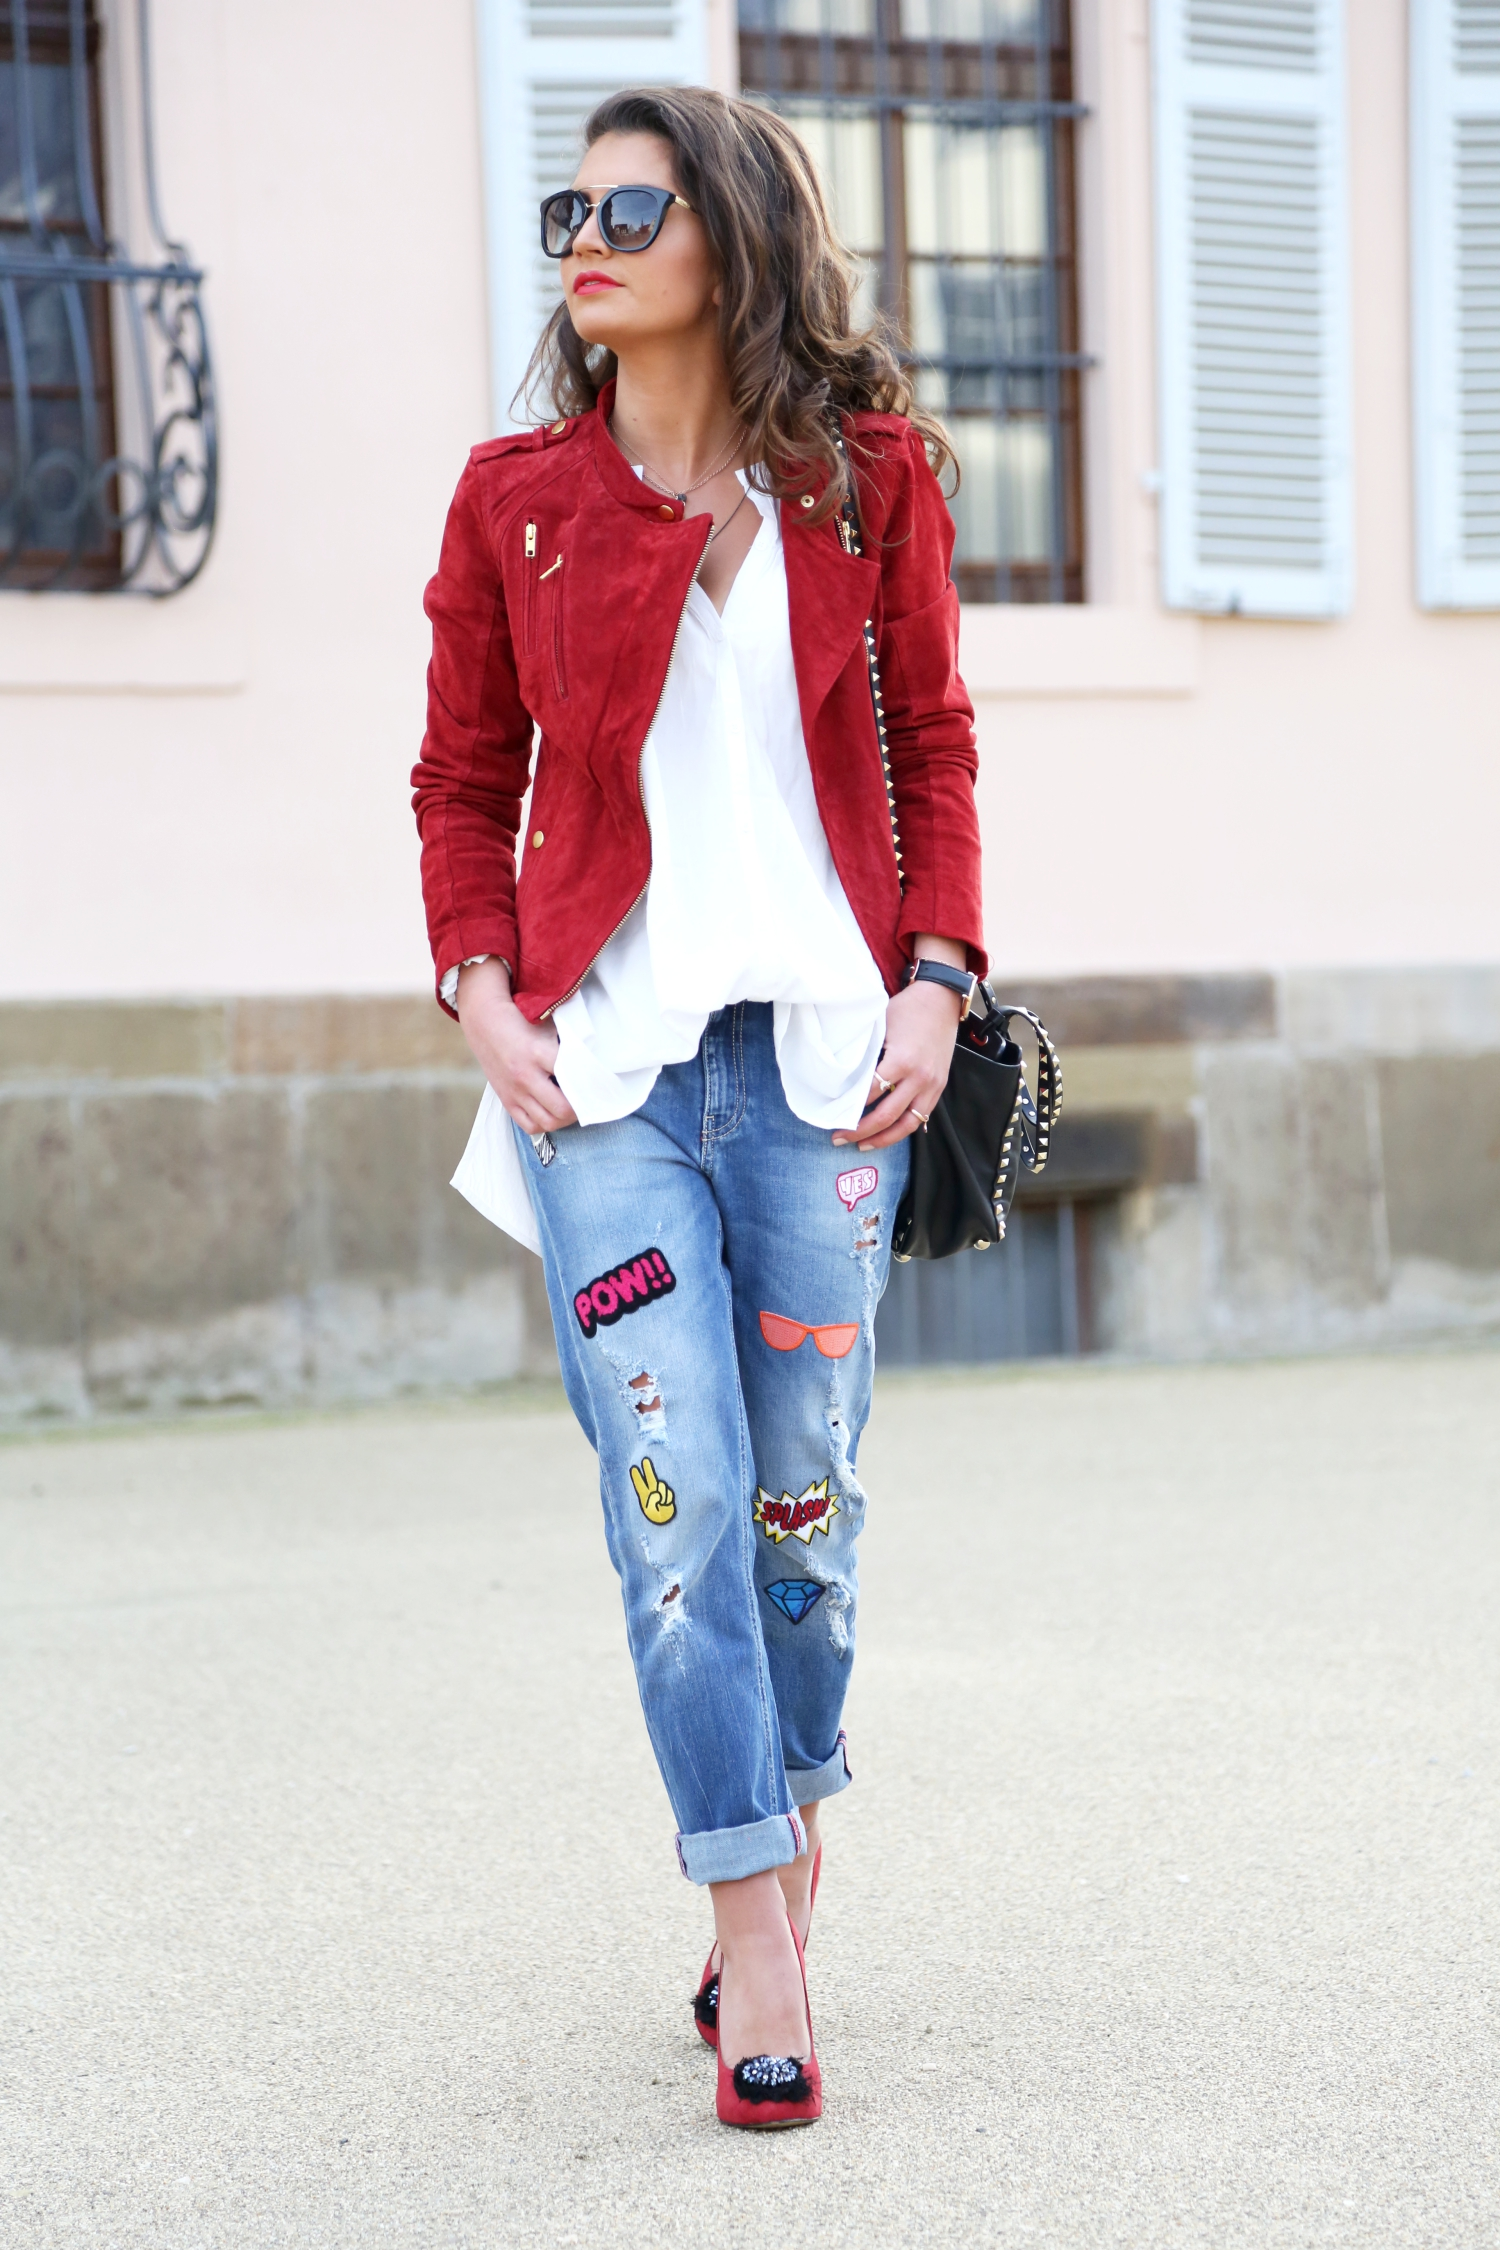 outfit-edited-red-leather-jacket